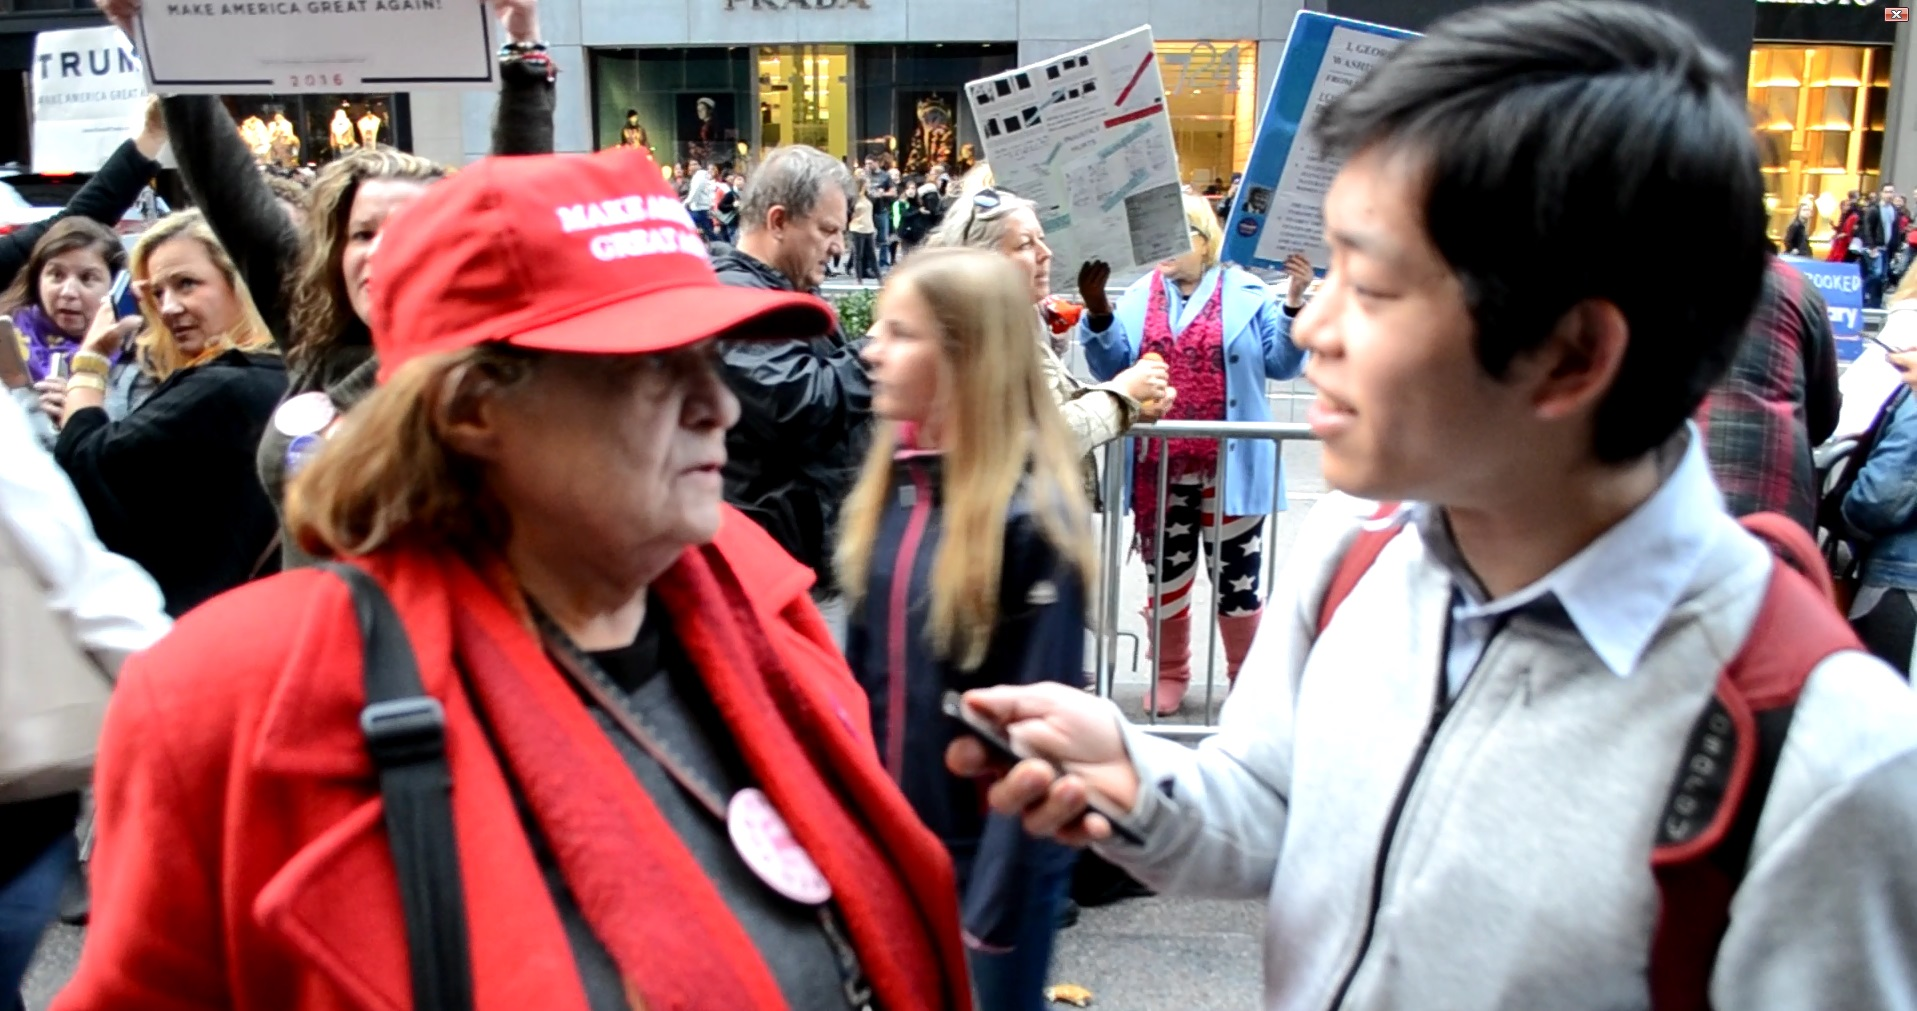 Interview to Trump supporter